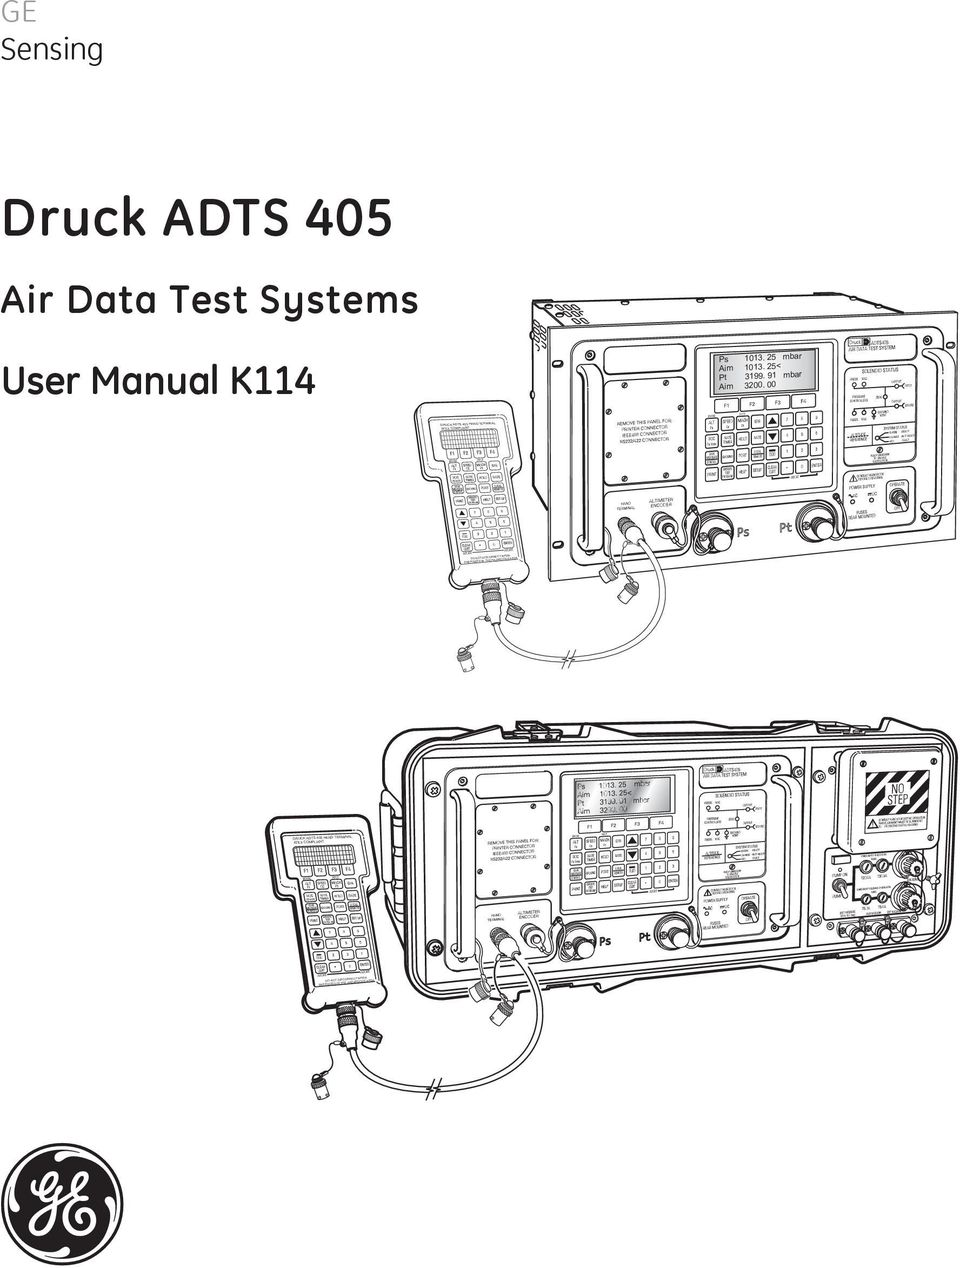 00 DRUCK ADTS 405 HAND TERMINAL ATEX COMPLIANT DO NOT DISCONNECT WHEN  ENERGIZED